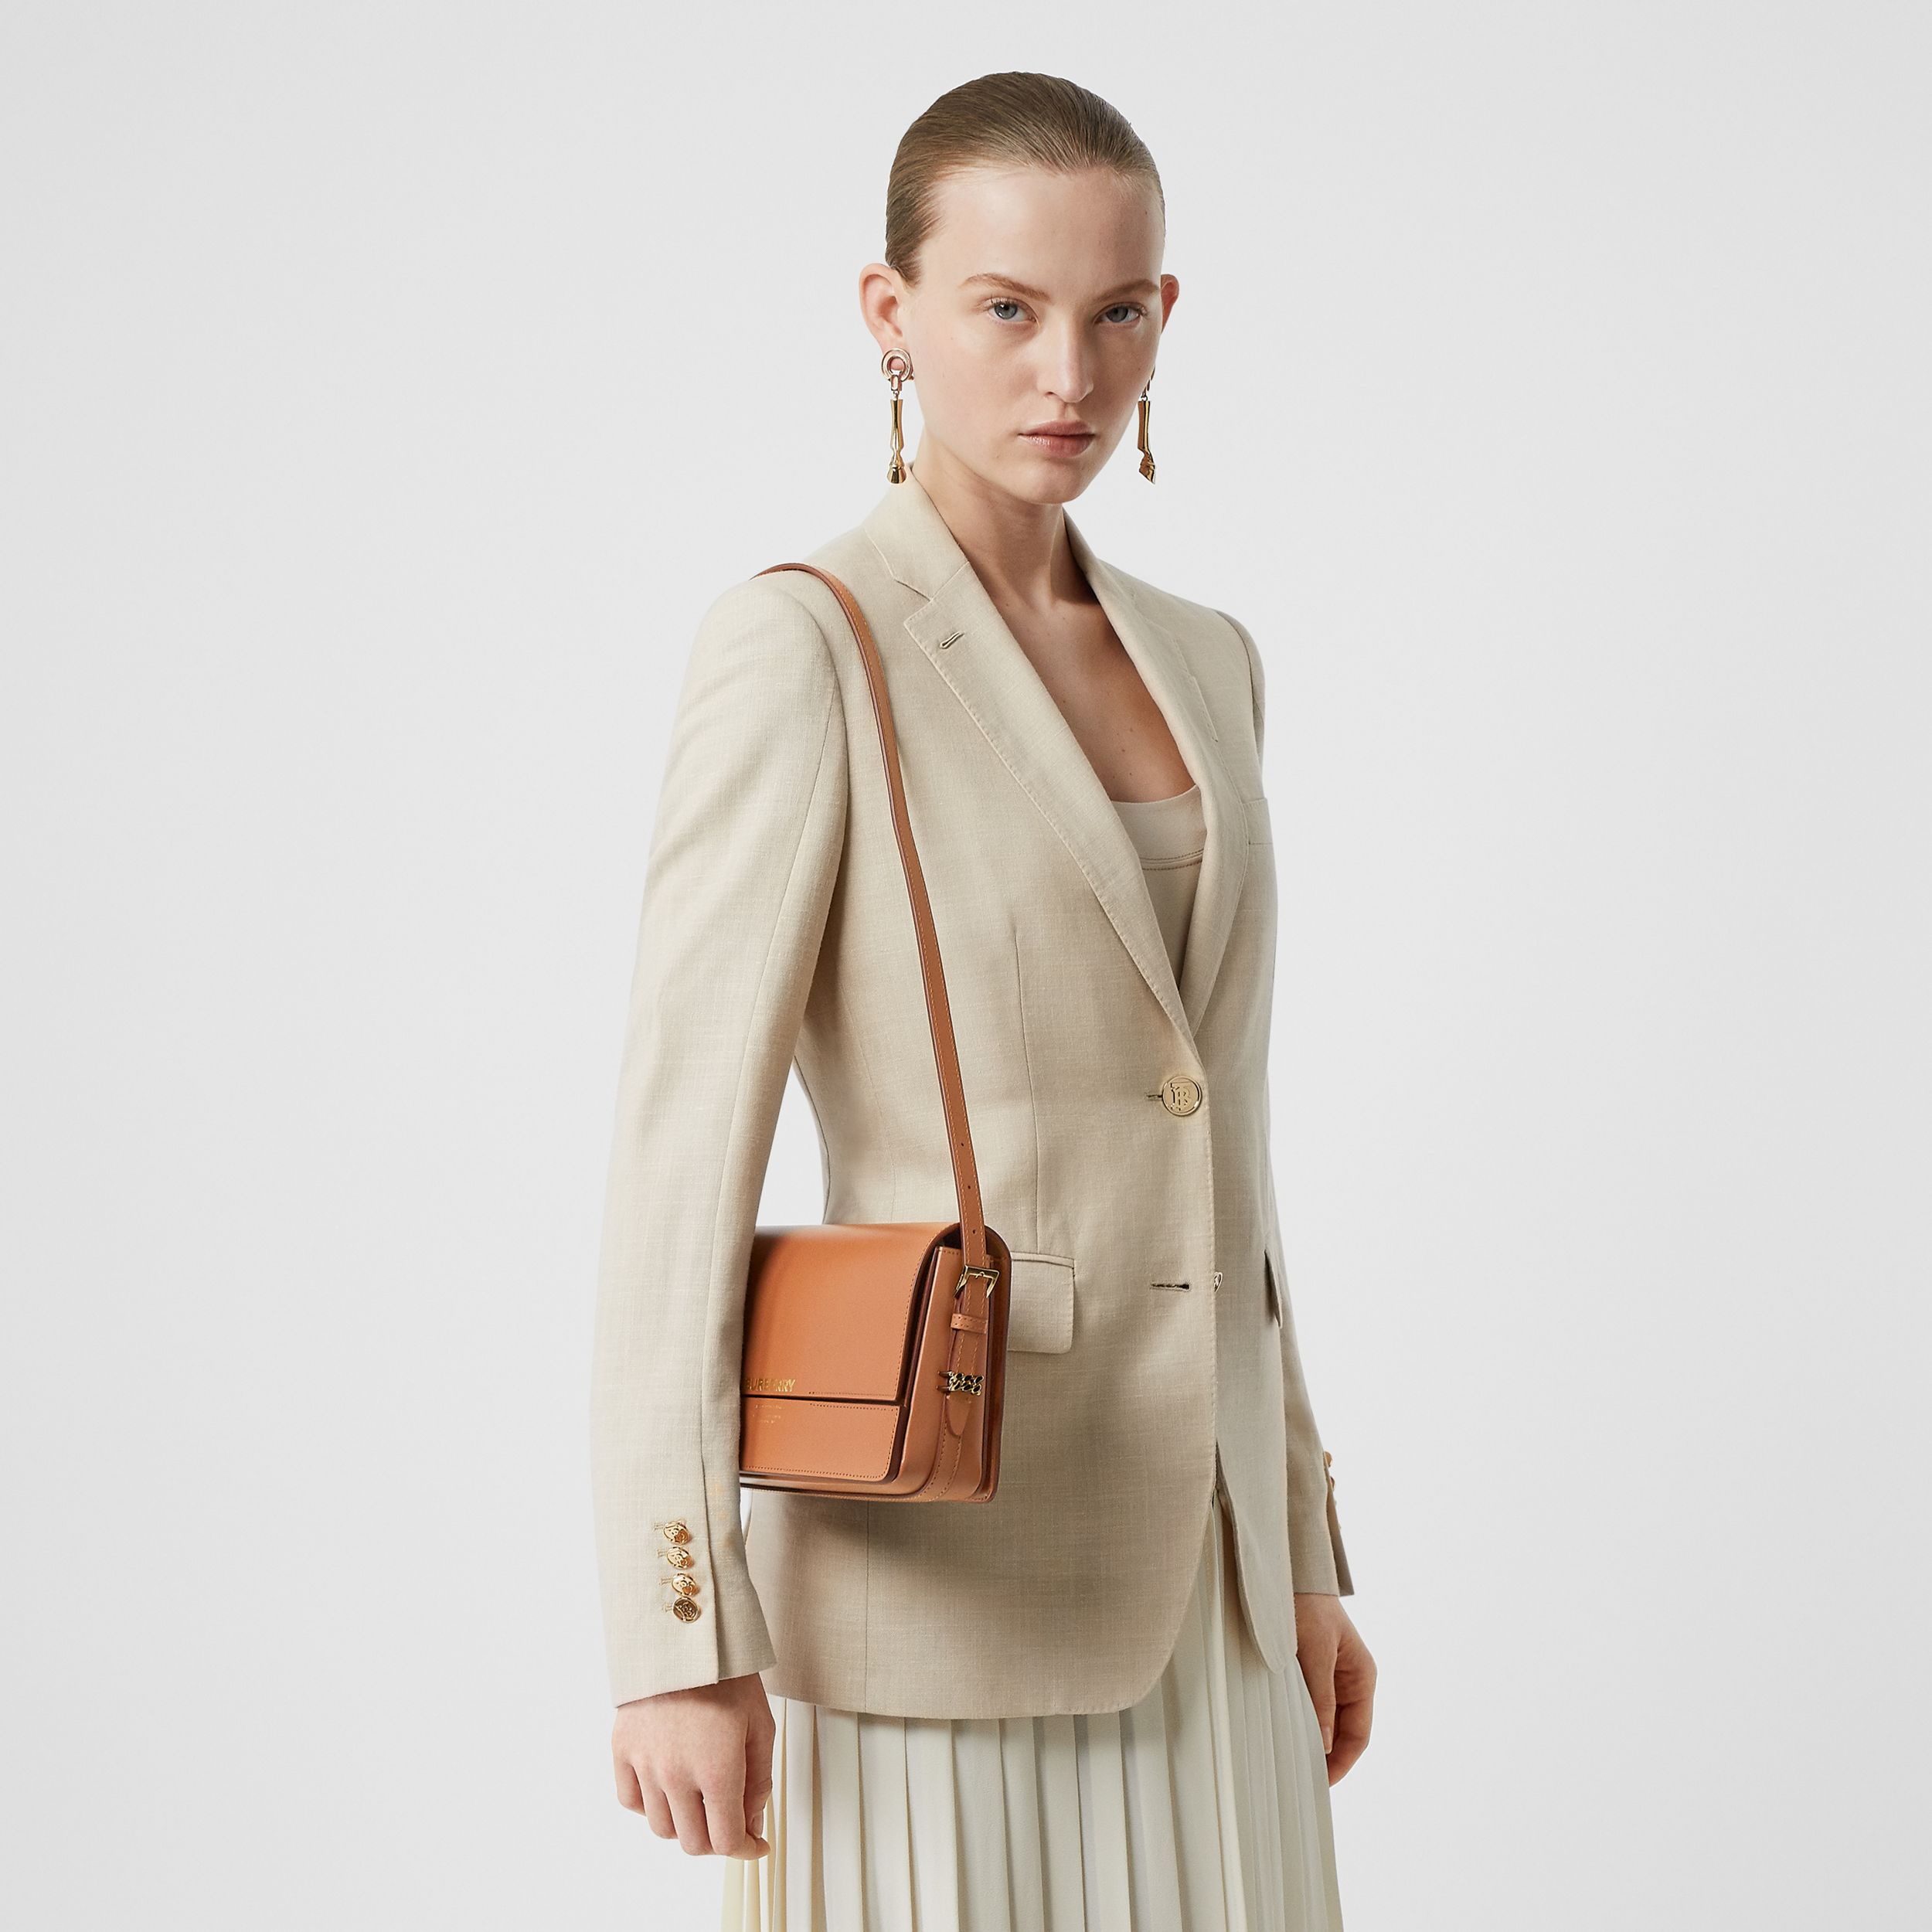 Mini Leather Grace Bag in Nutmeg - Women | Burberry - 3